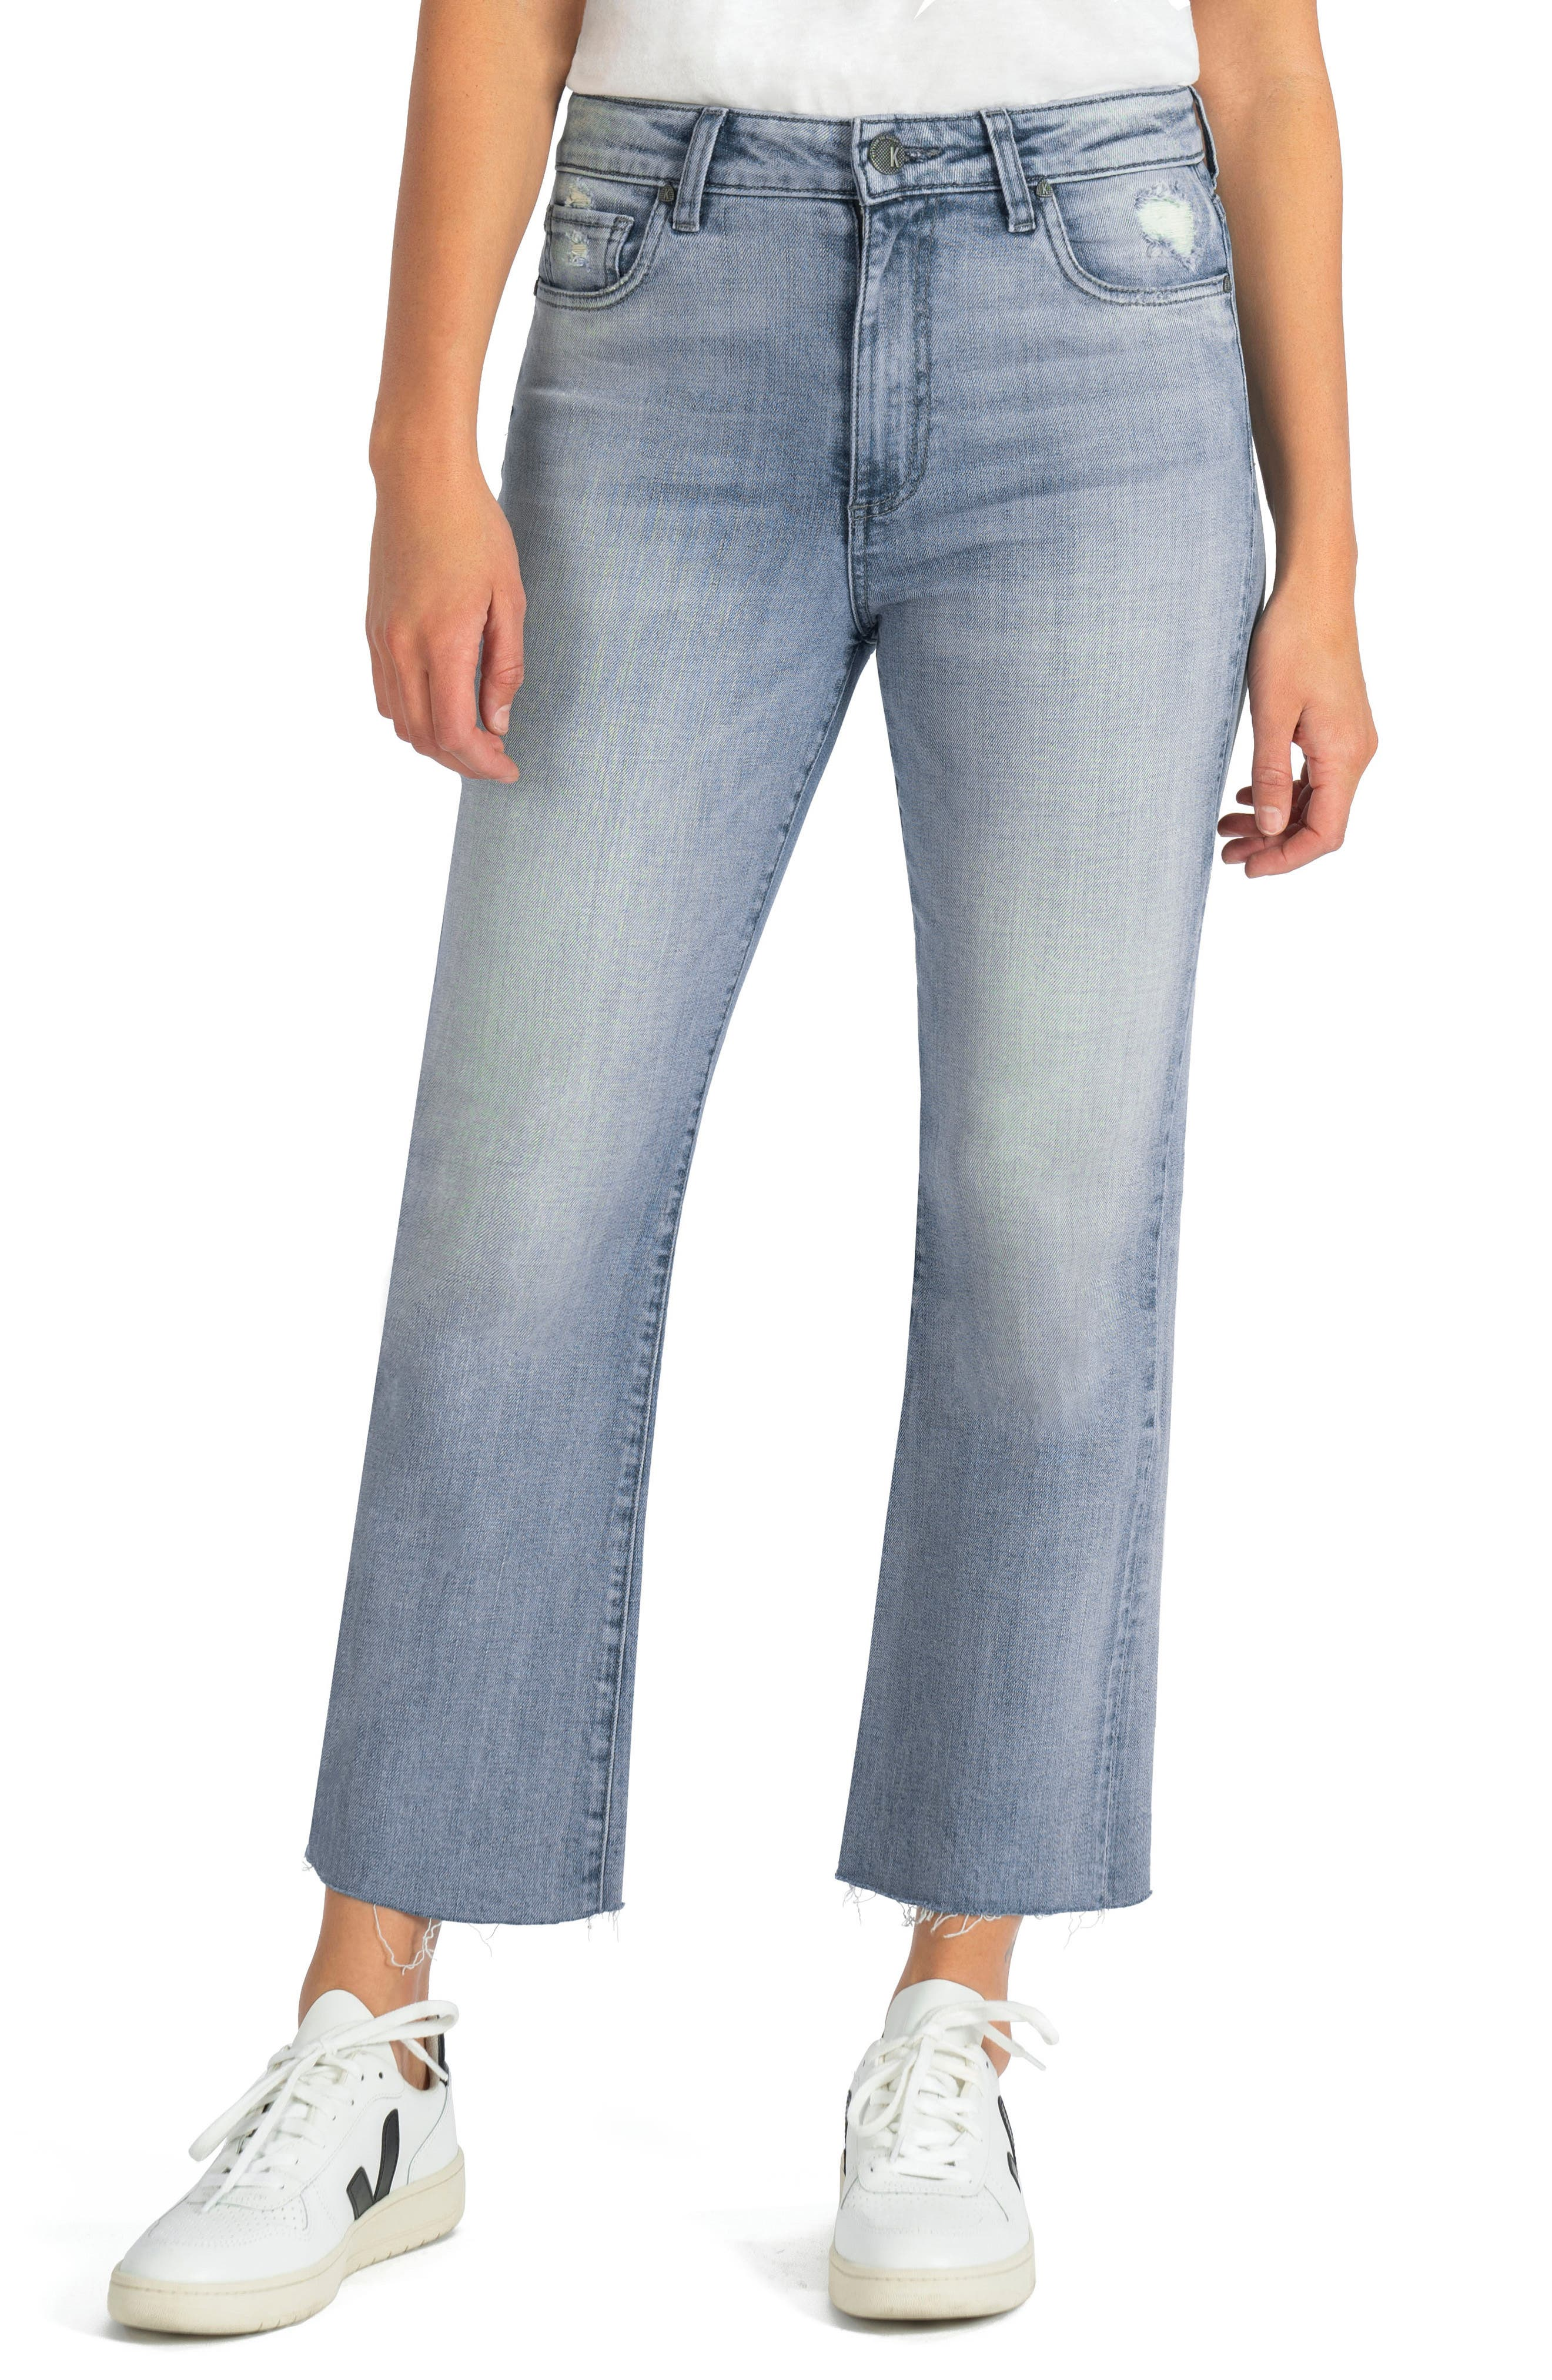 Ankle-length raw hems make a casual-cool statement on these stretch-kissed high-waist jeans with the perfect hint of flare. Style Name: Kut From The Kloth Kelsey High Waist Raw Hem Kick Flare Jeans (Difference). Style Number: 6054288. Available in stores.